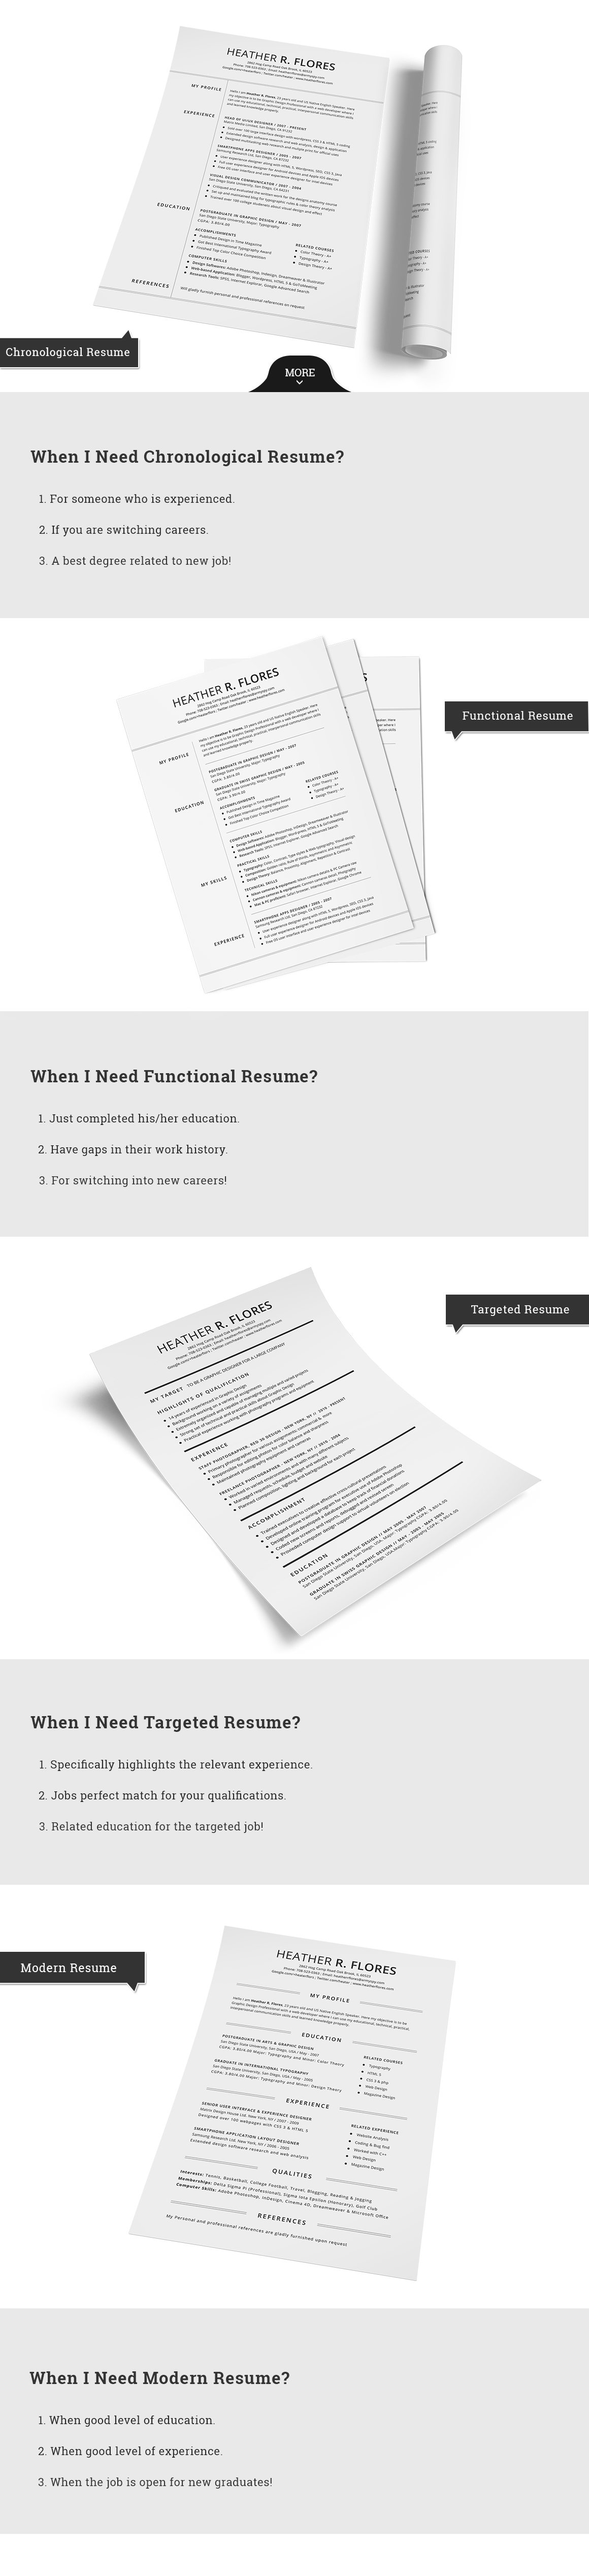 4 Pieces Resume/CV Set Template by SNIPESCIENTIST on Creative Market